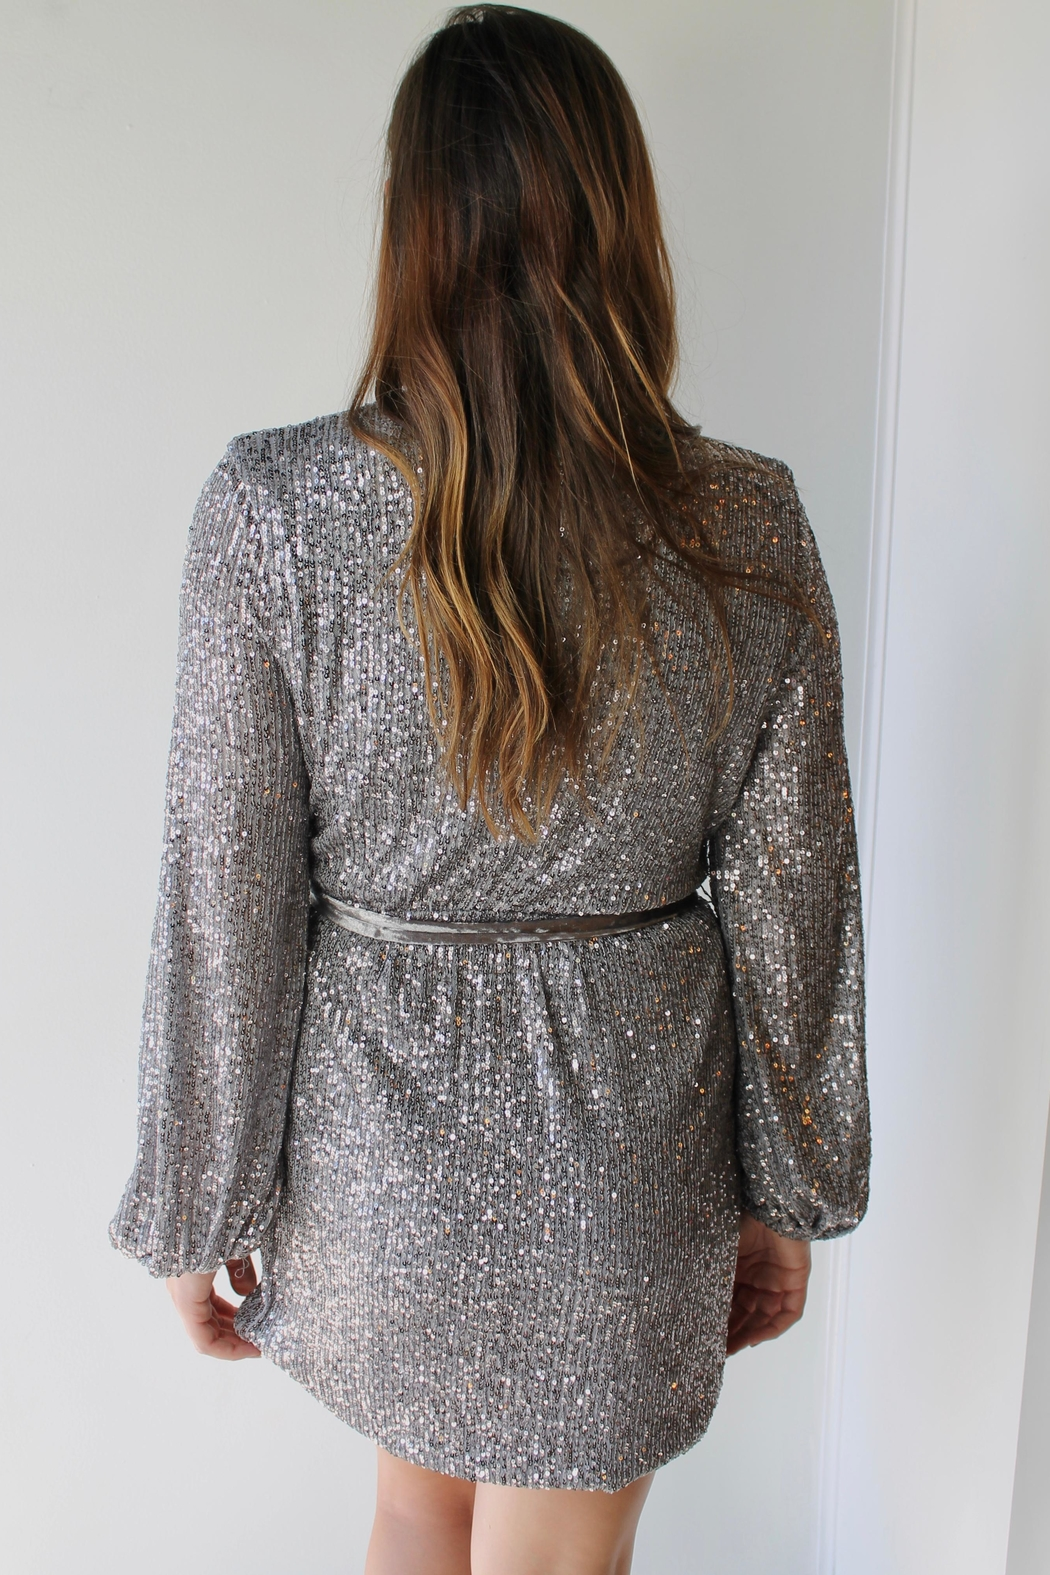 BLANC Champagne Dreams Dress - Front Full Image